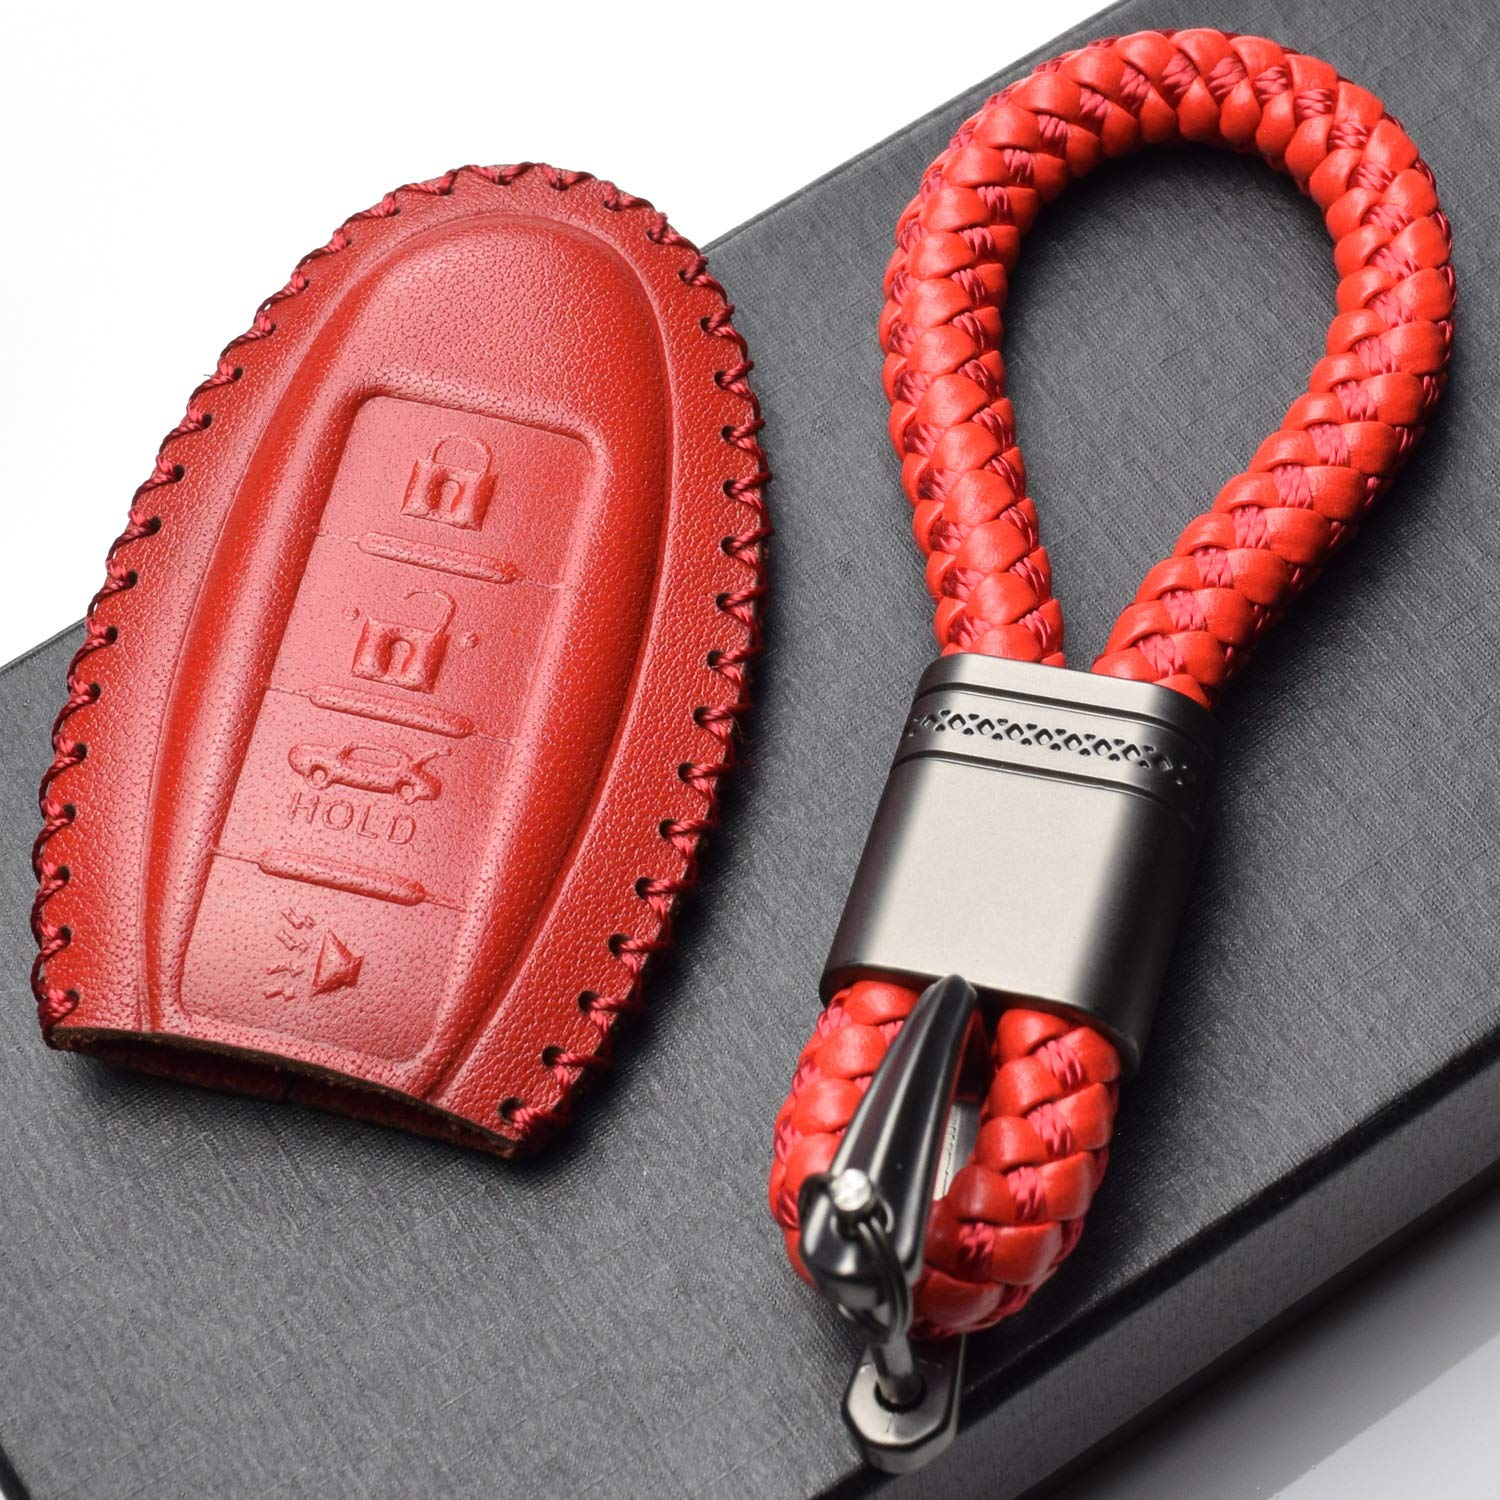 3 Buttons, Black//Red Vitodeco Leather Keyless Entry Remote Control Smart Key Case Cover with a Key Chain for Nissan /& Infiniti